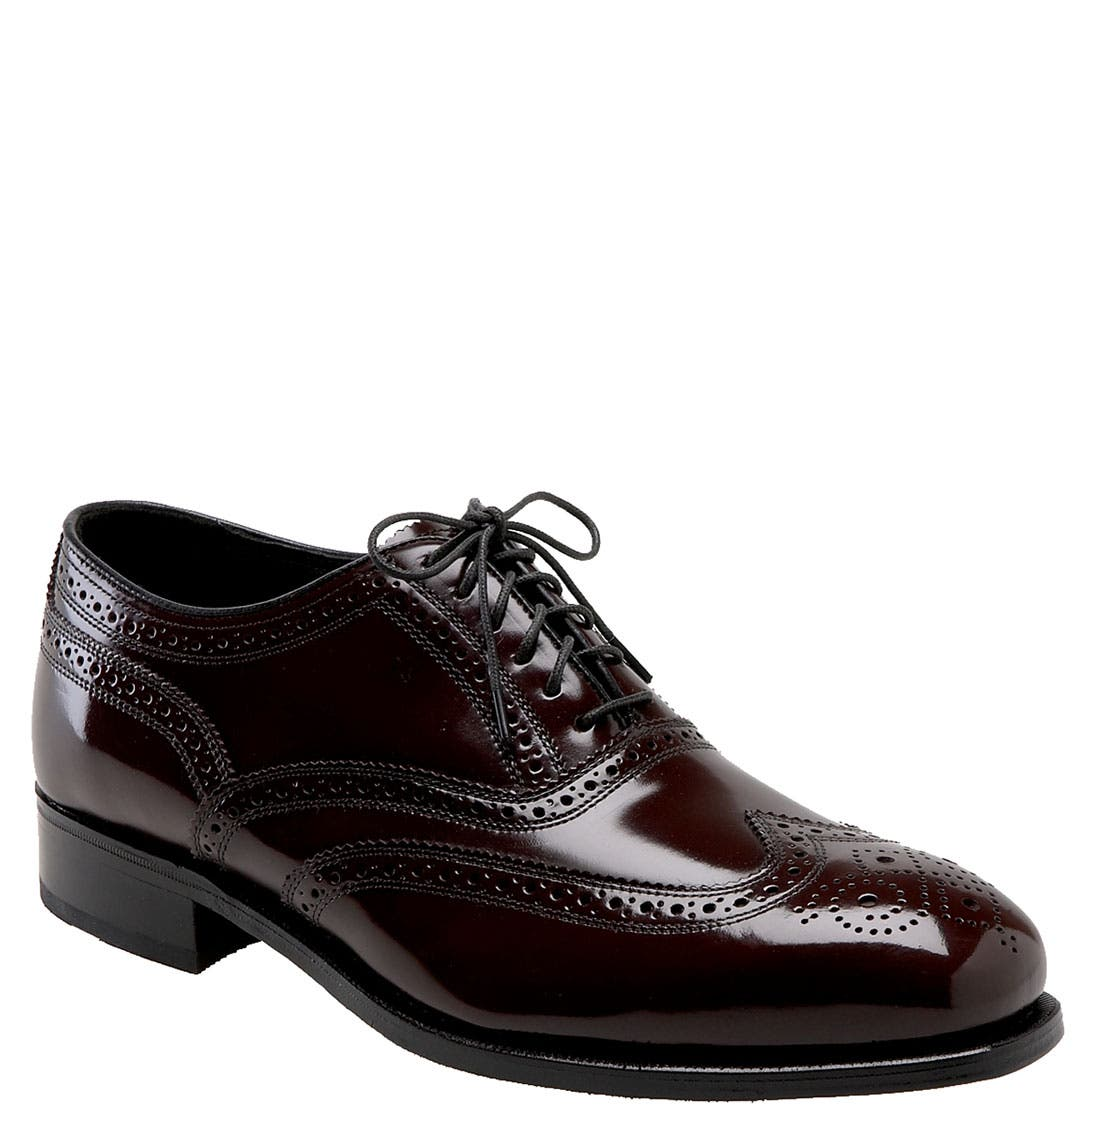 Florsheim 'Lexington Six-Eye' Oxford